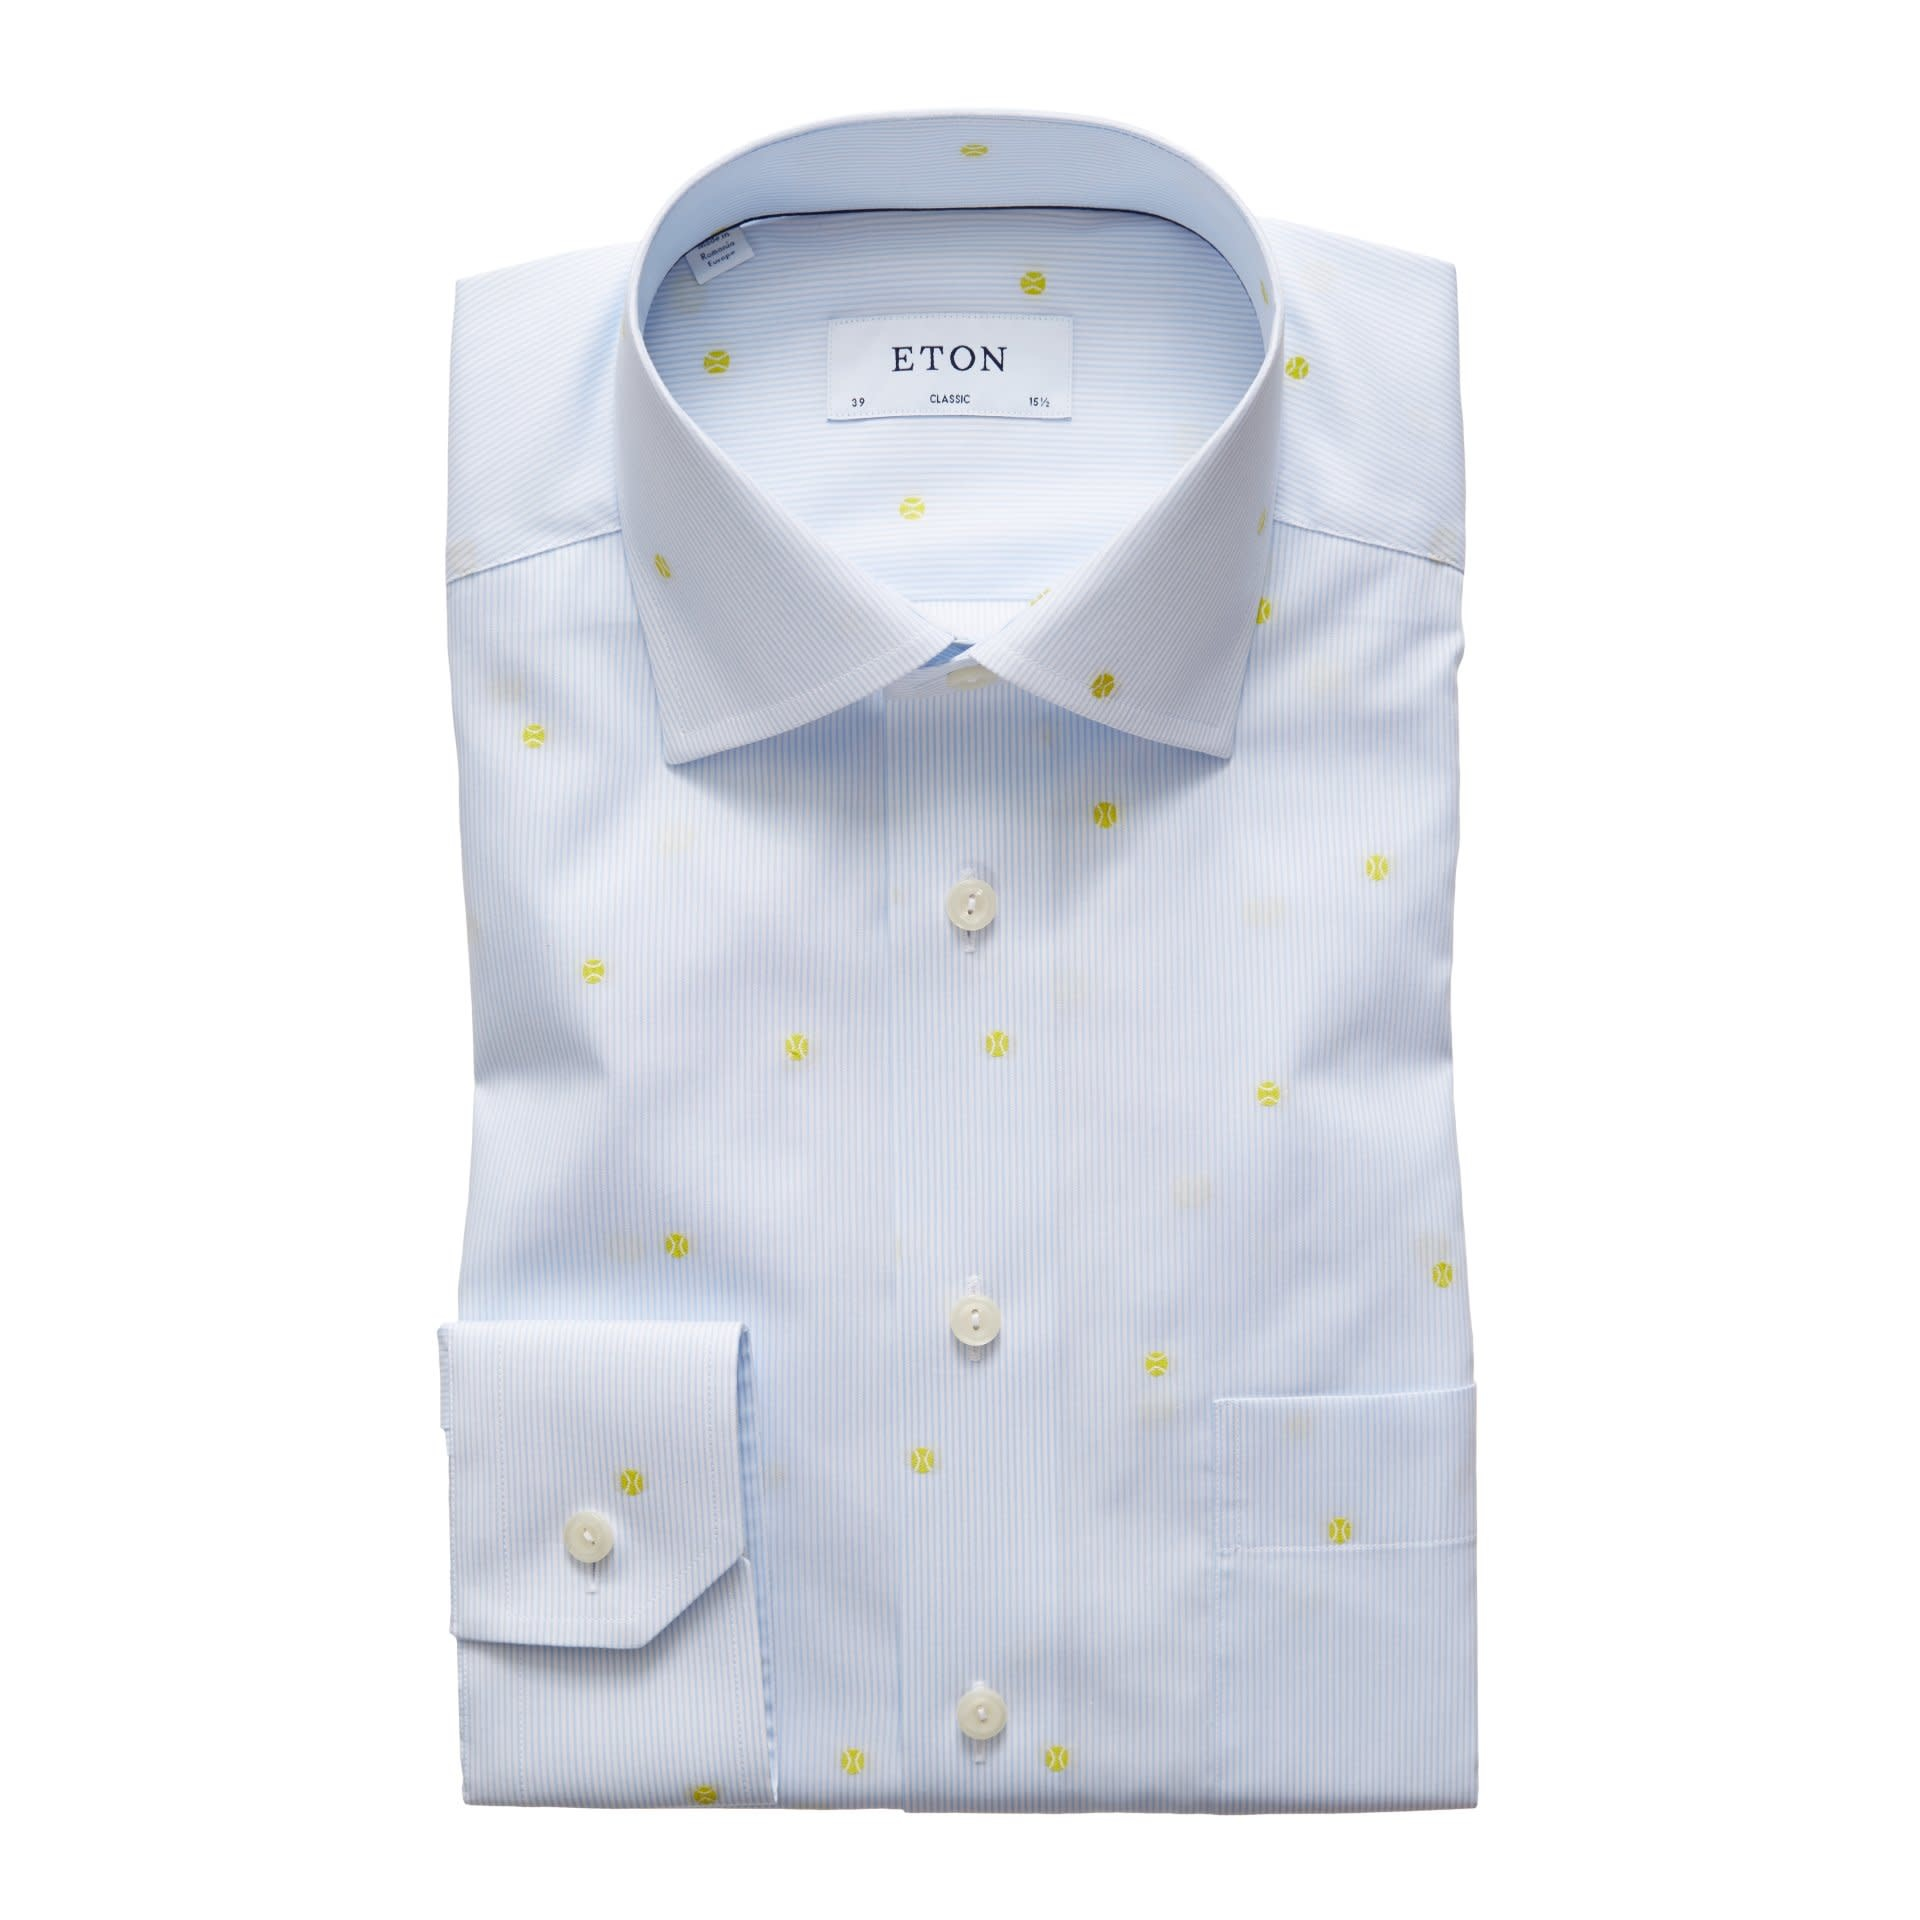 9949bce4 ETON Striped Tennis Shirt | Napoli's Per La Moda - Napoli's Clothing ...